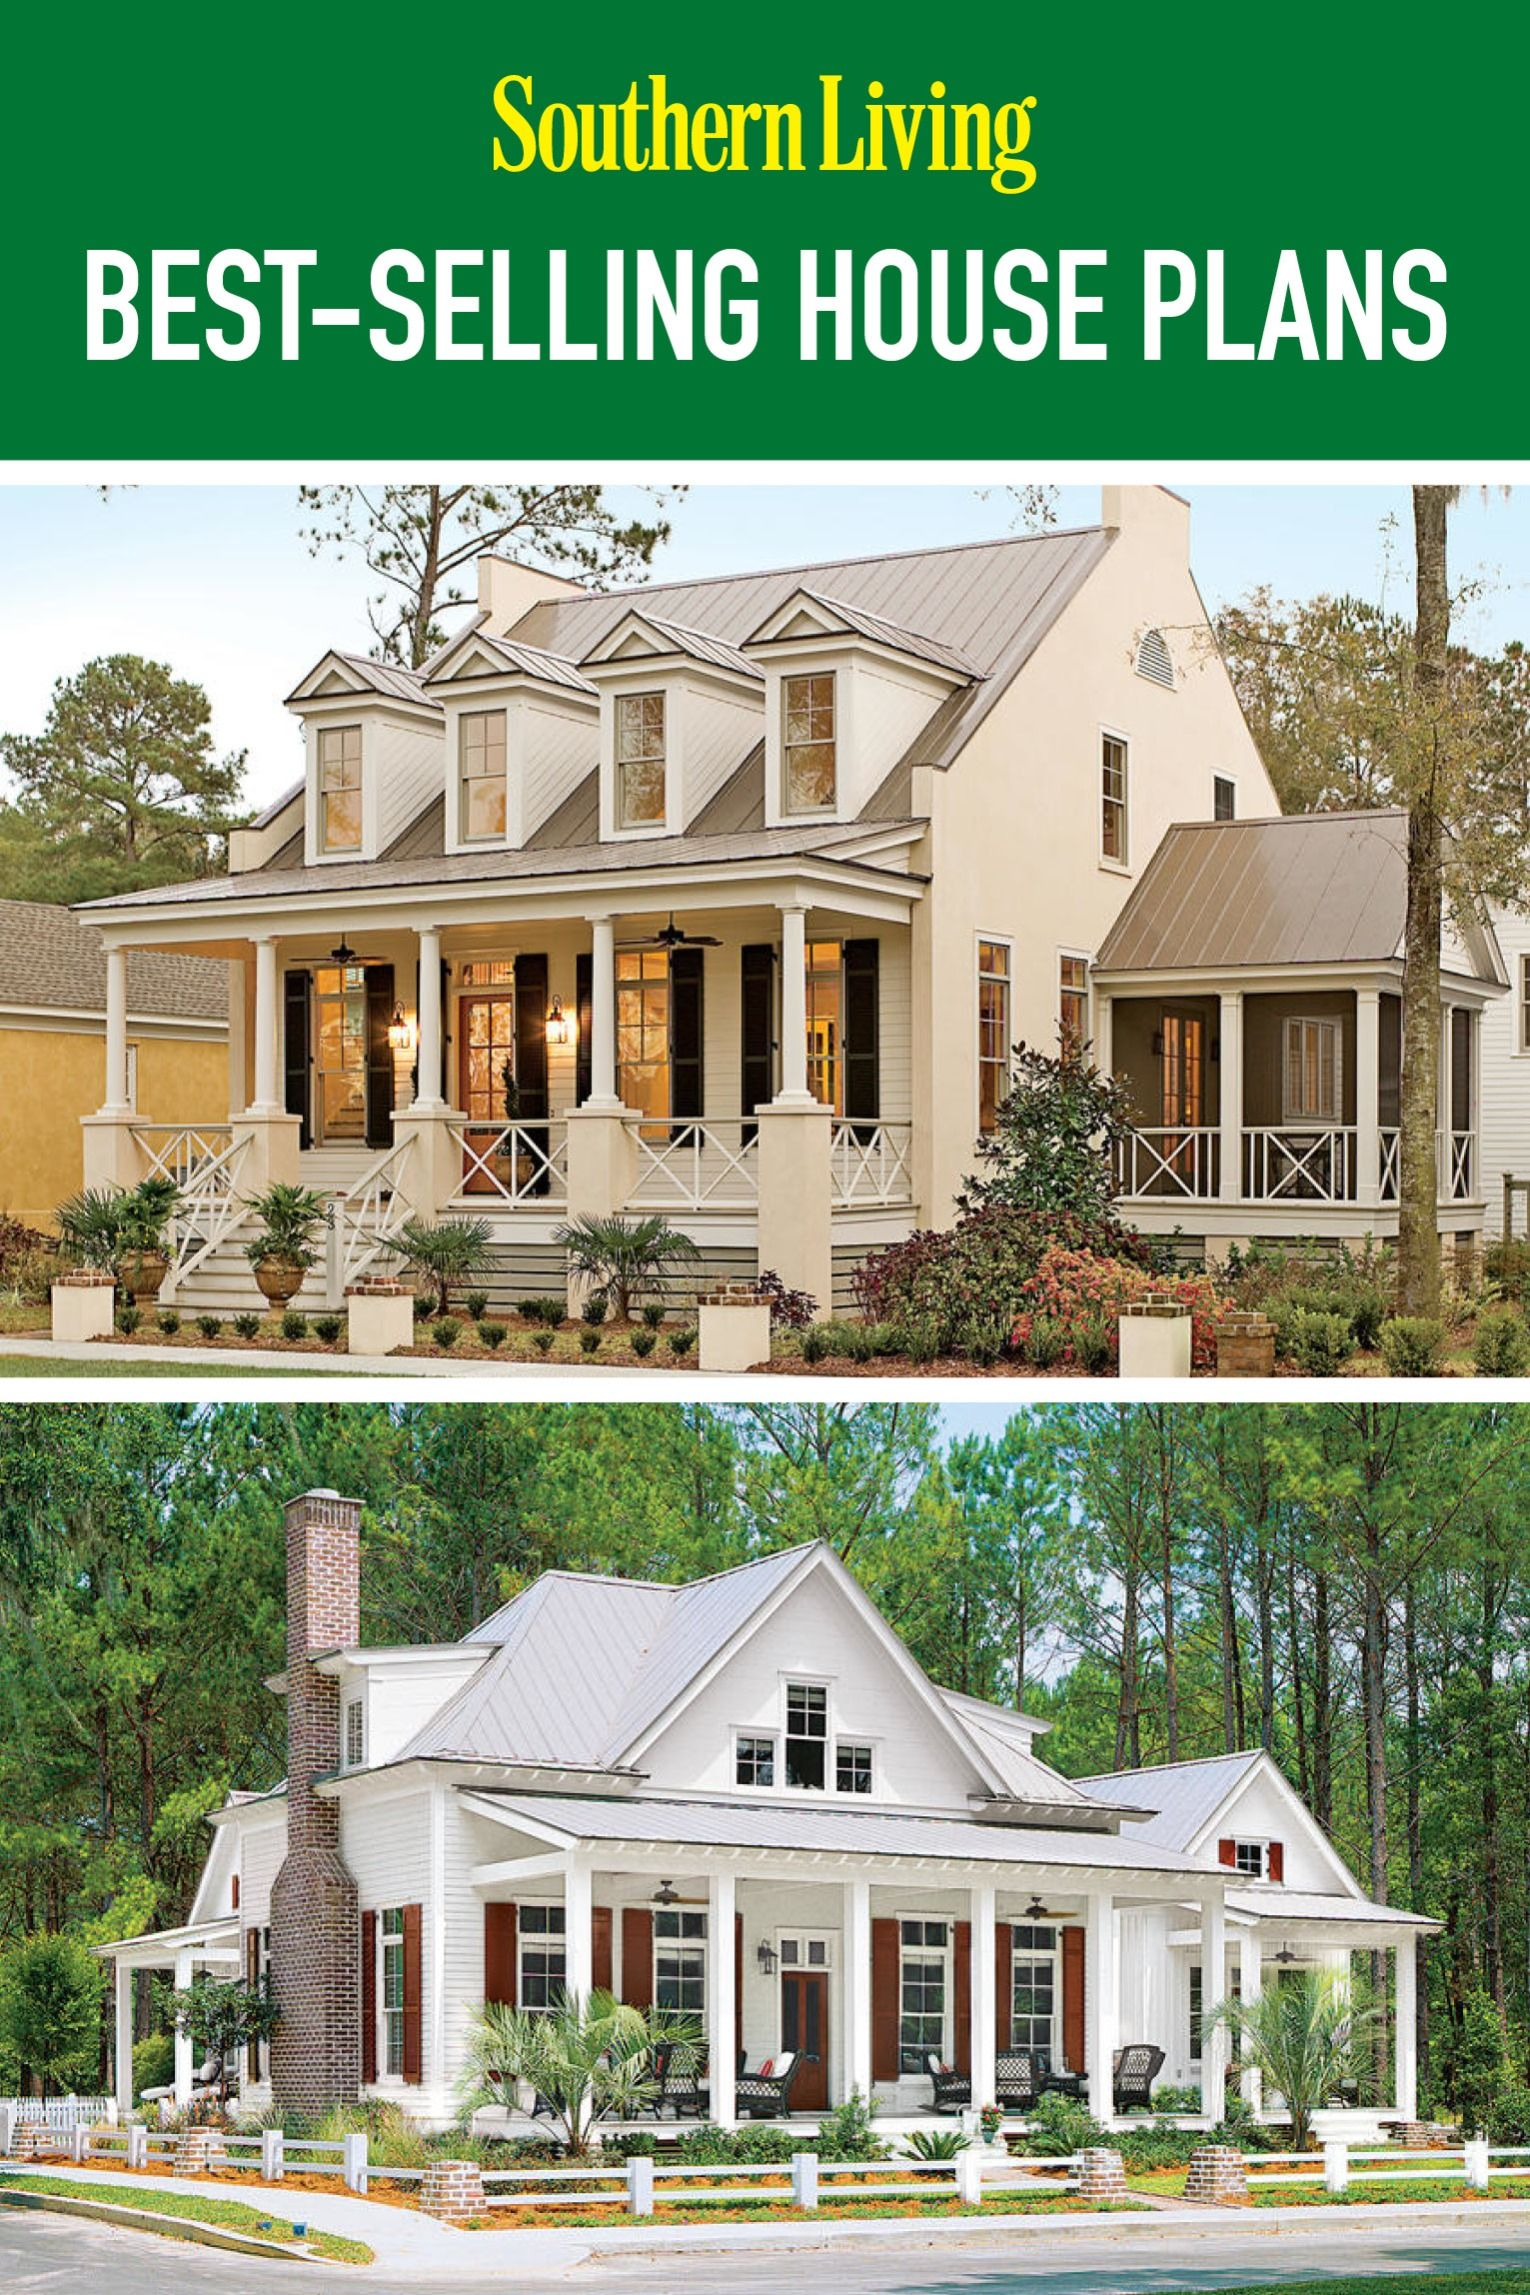 Top 12 Best Selling House Plans   Southern Living House Plans     Celebrating over 30 years of offering exclusive custom designed homes   here s a look at some of the most popular plans offered by Southern Living  House